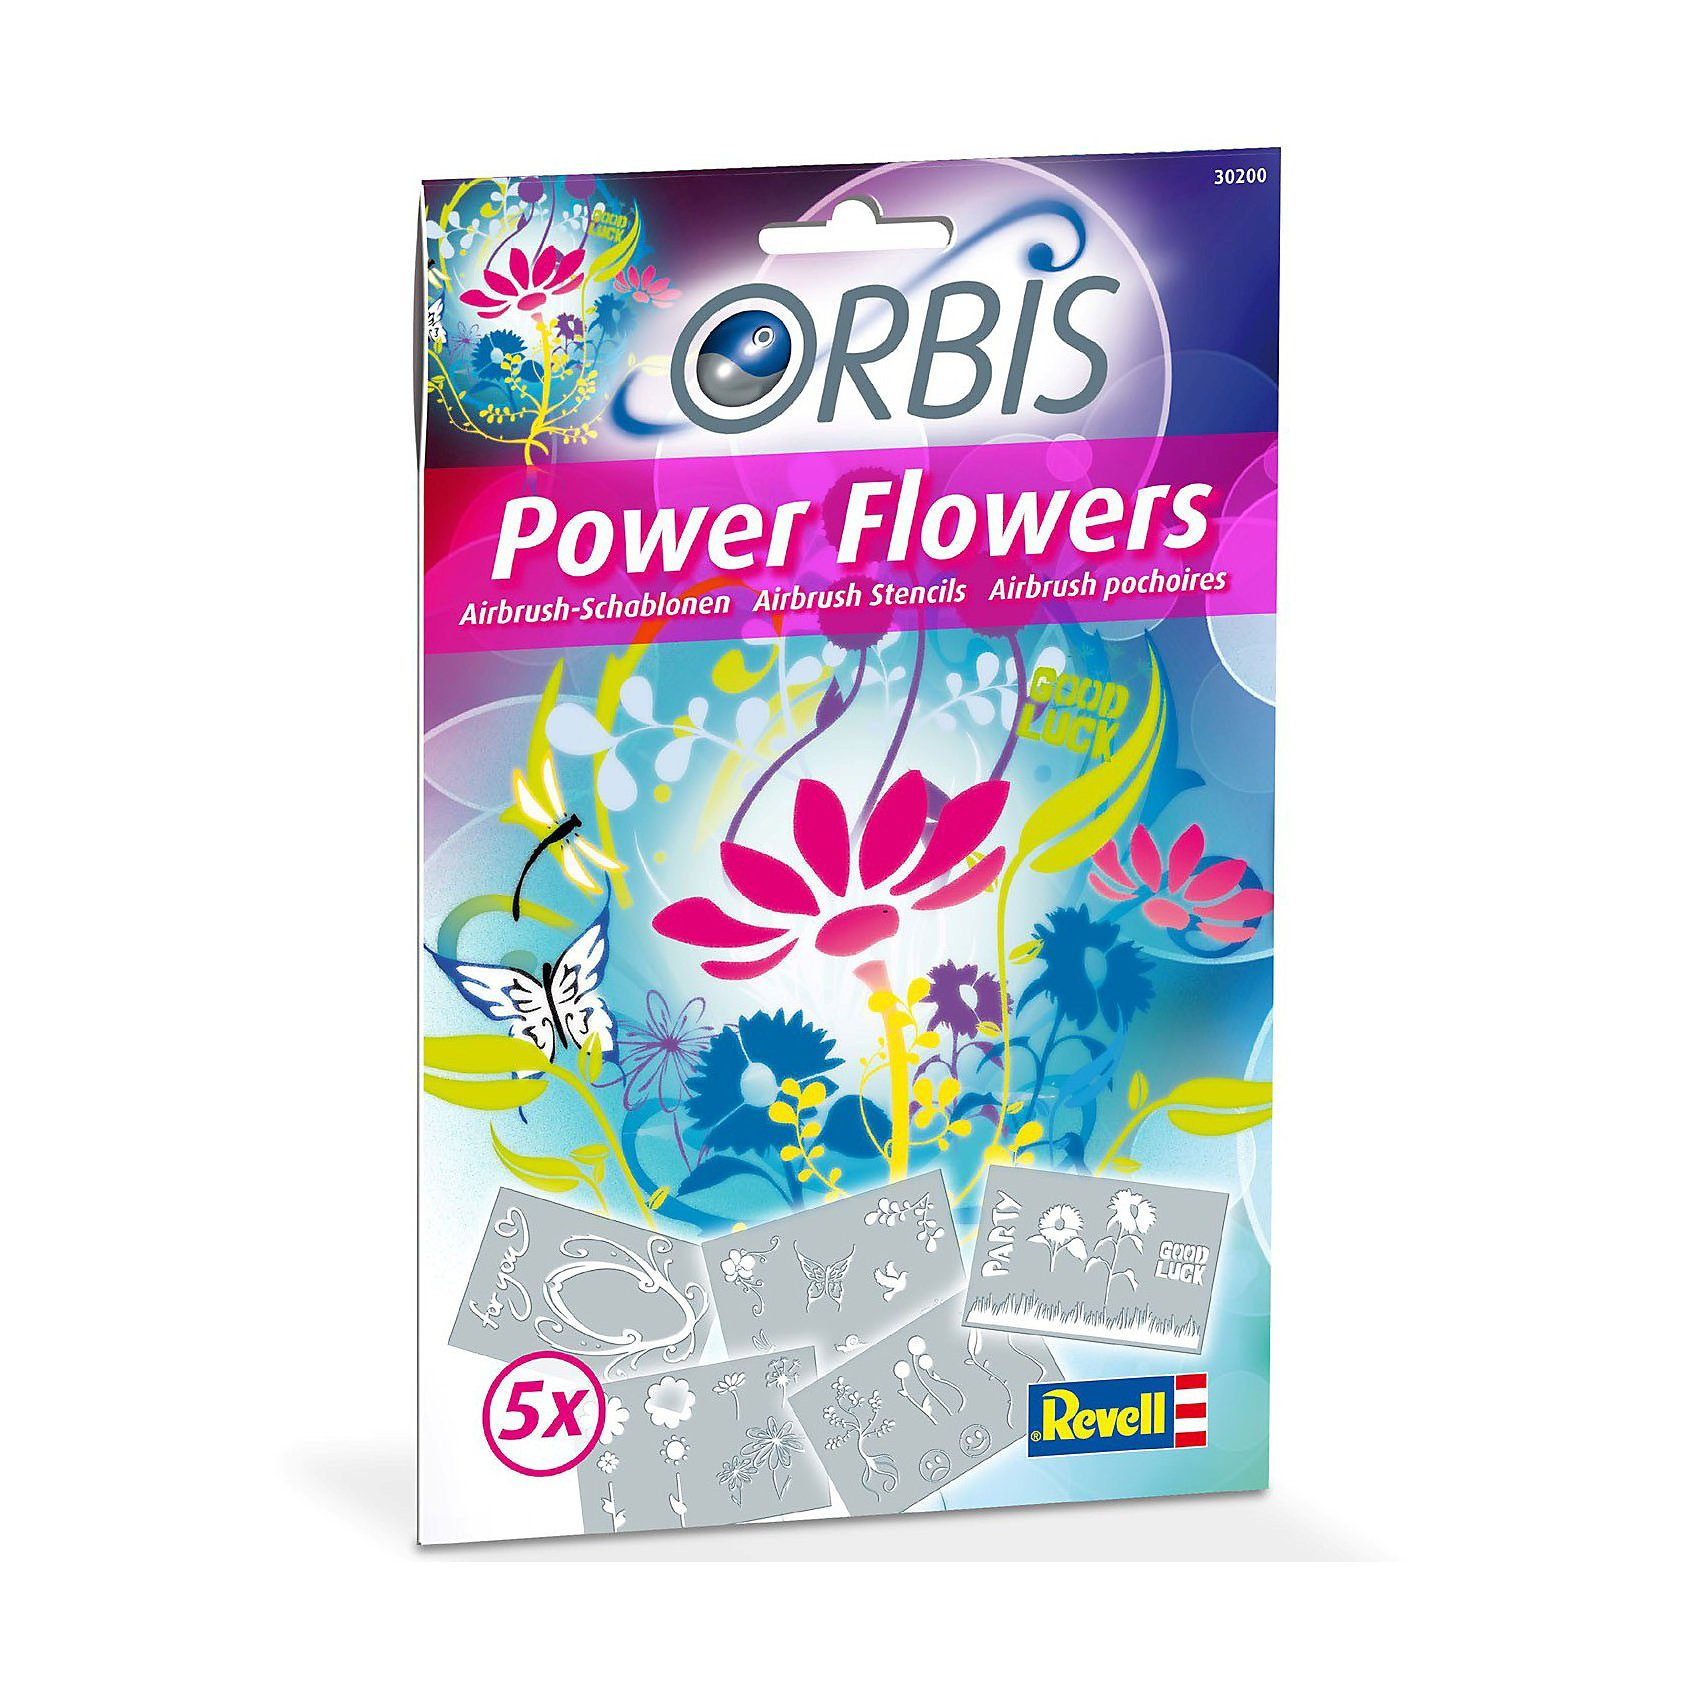 Revell Orbis 30200 Airbrush Schablonen-Set Power Flowers